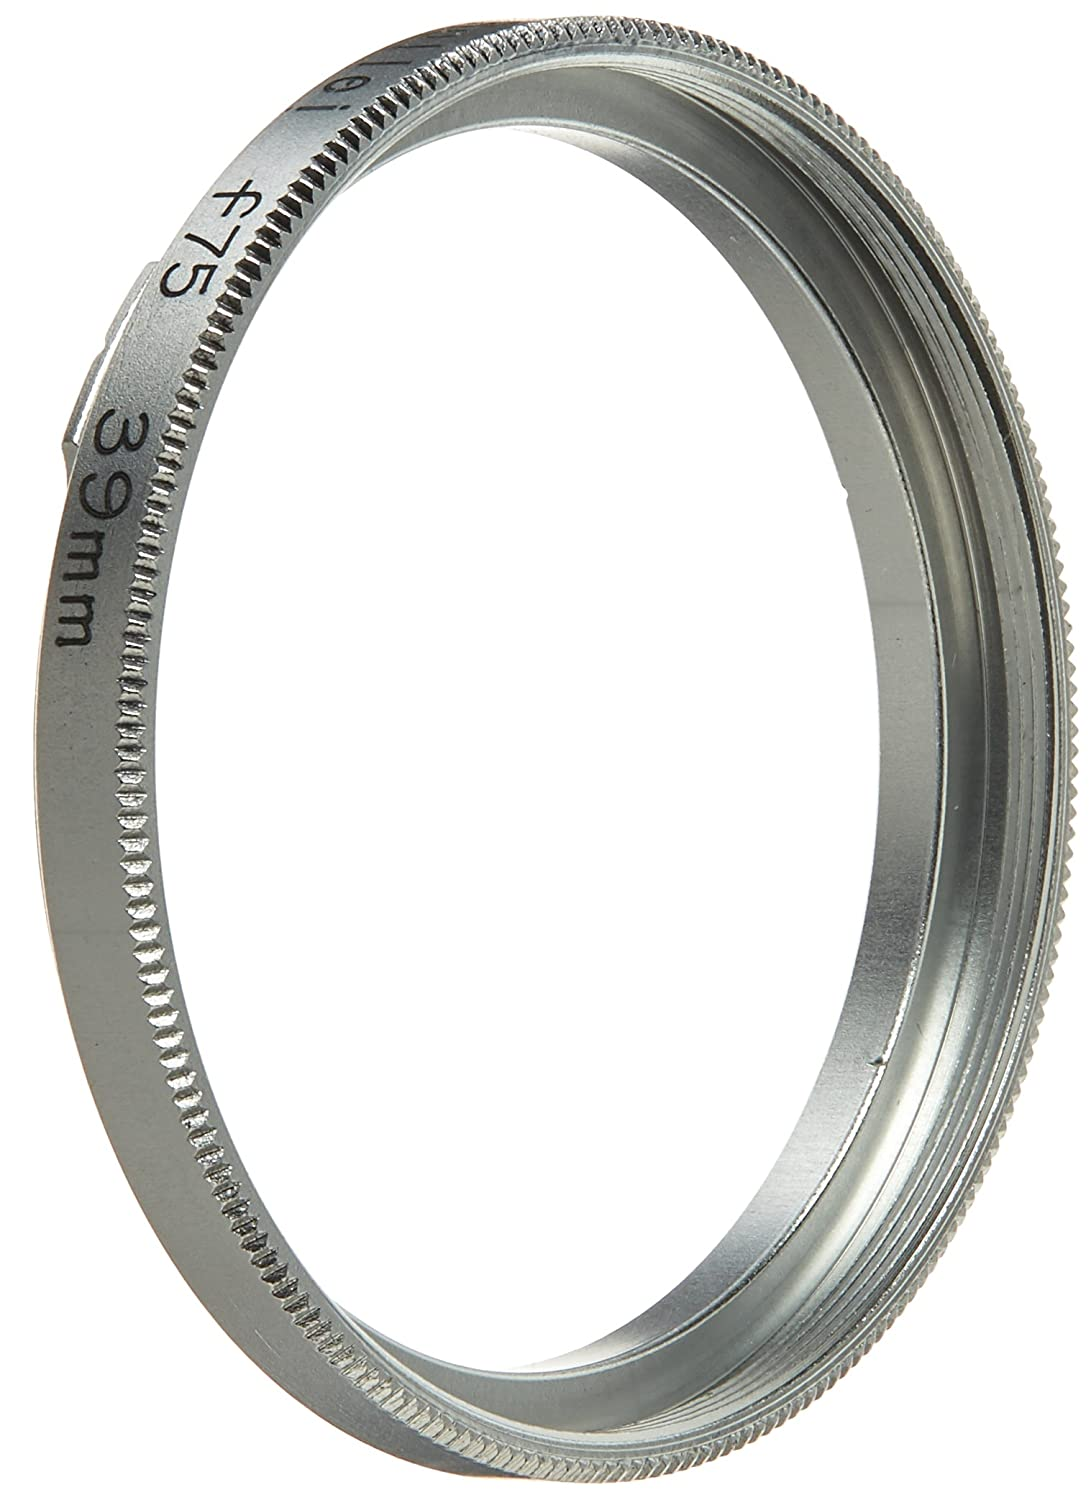 Fotodiox Step Ring, Bayonet II (Bay 2)-39mm Filter Adapter for Rolleiflex Rollei TLRs with 75mm F3.5 Take Lens 08srTRLBII39